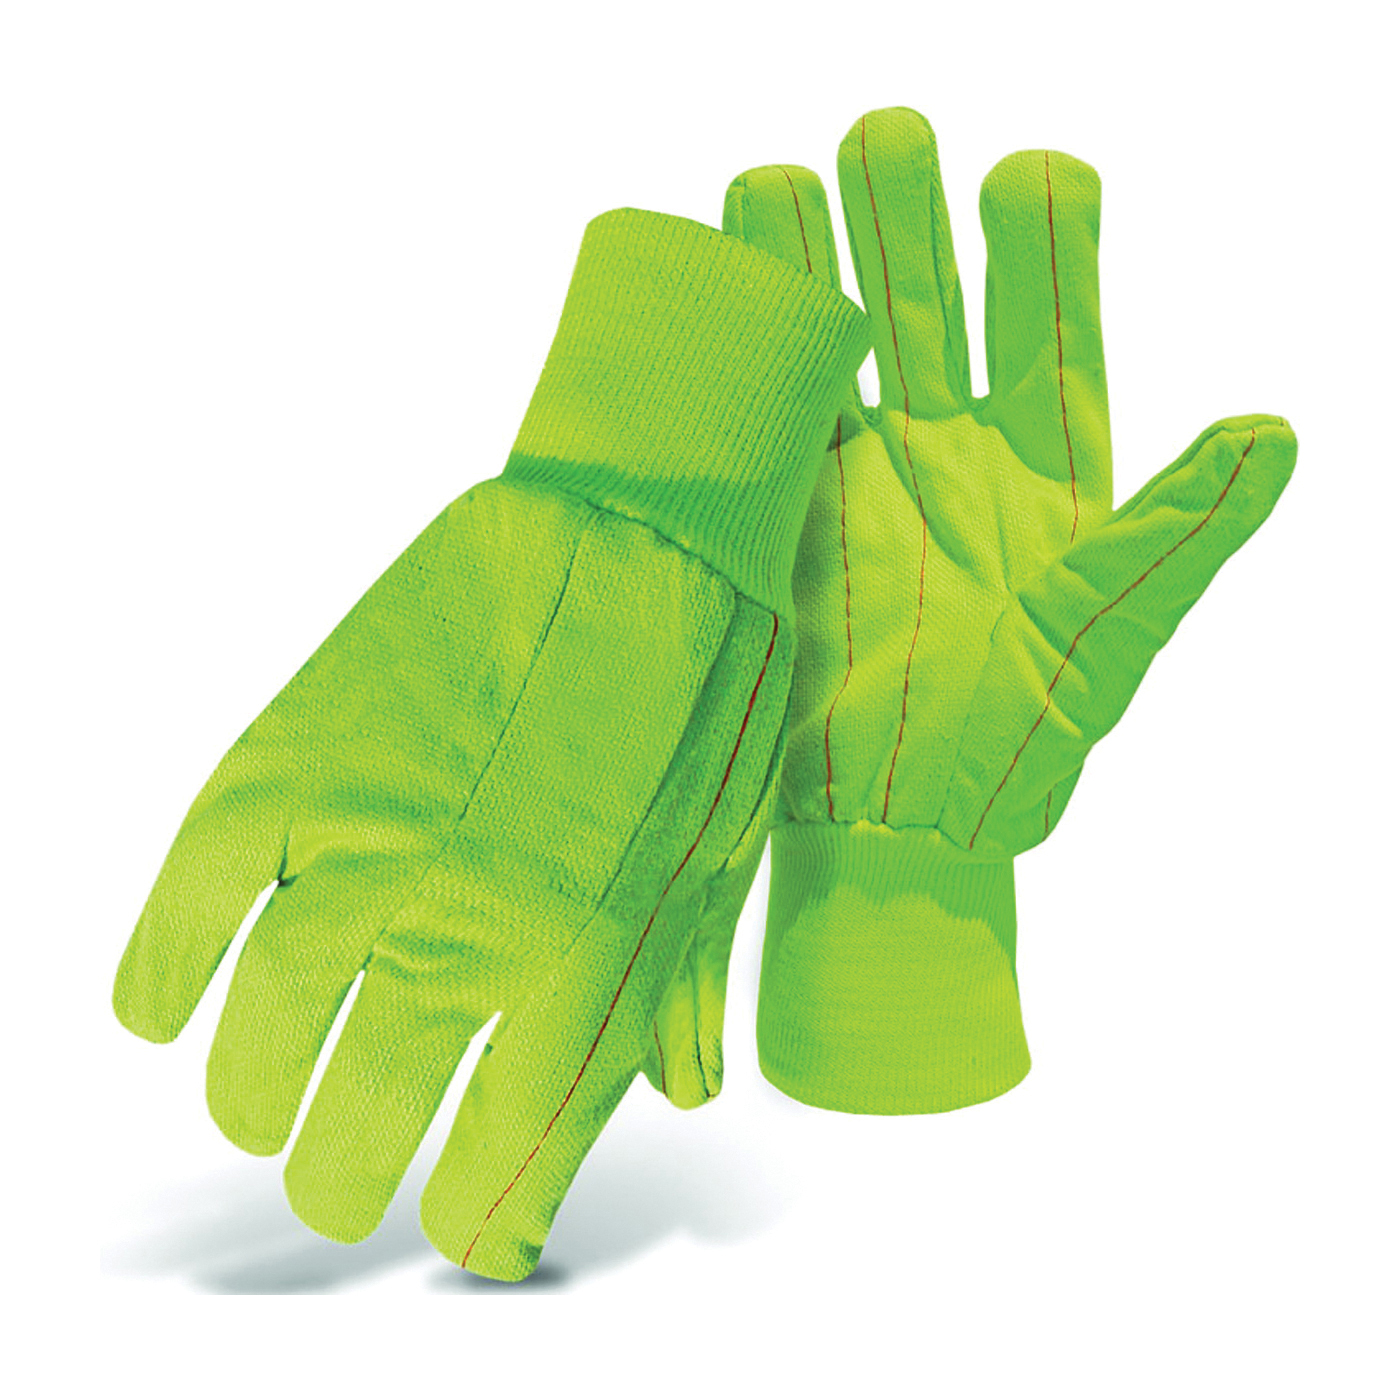 Picture of BOSS 30PCN Protective Gloves, L, Straight Thumb, Knit Wrist Cuff, Cotton/Polyester, Fluorescent Green